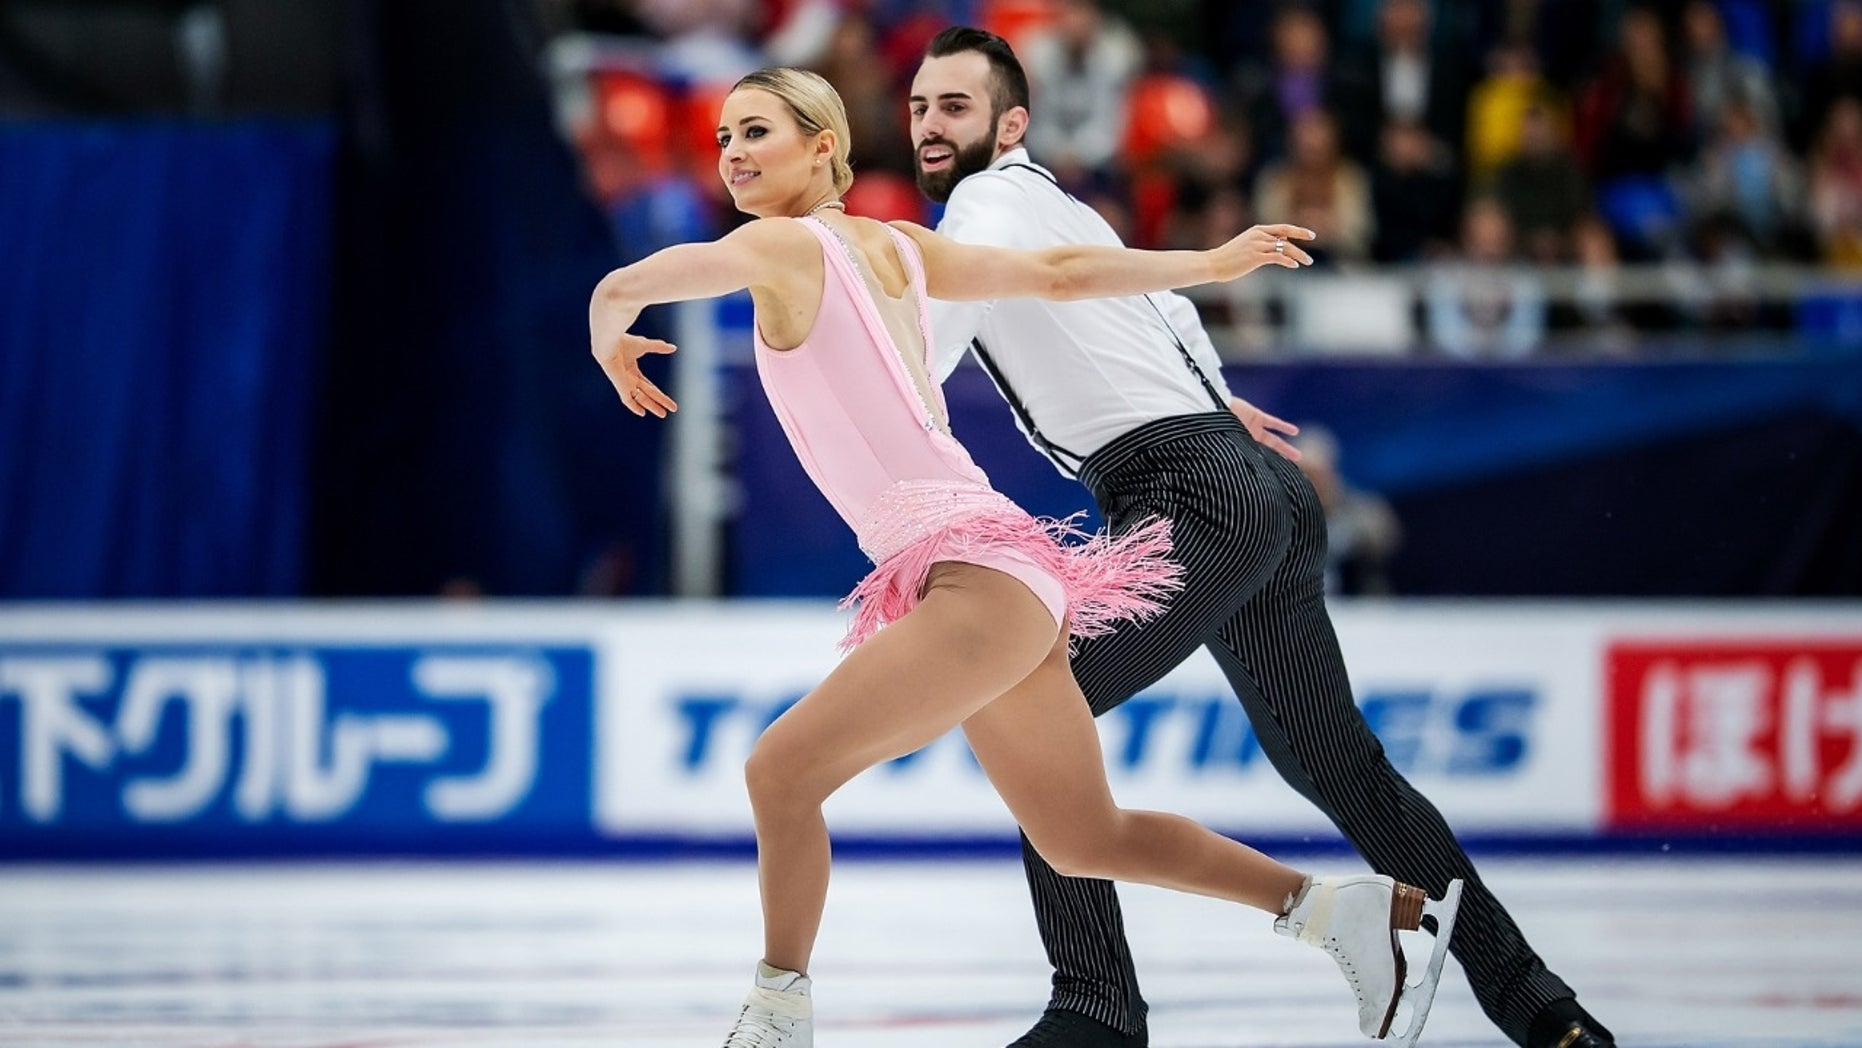 Ashley Cain and Timothy Leduc skating in Moscow, Russia, in Nov 2018.